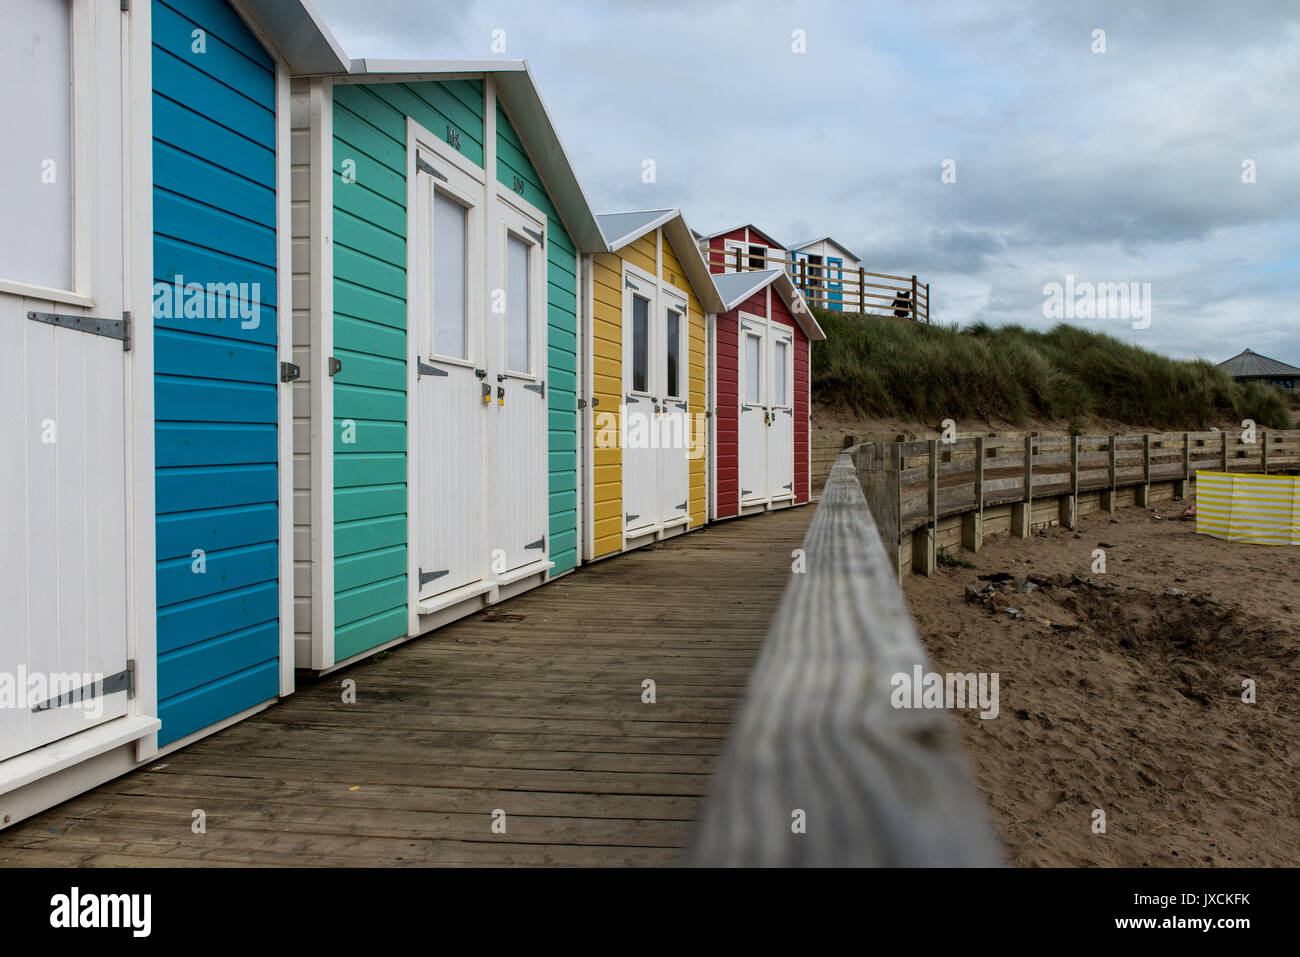 Hut resorts stock photos hut resorts stock images alamy for Beach hut style